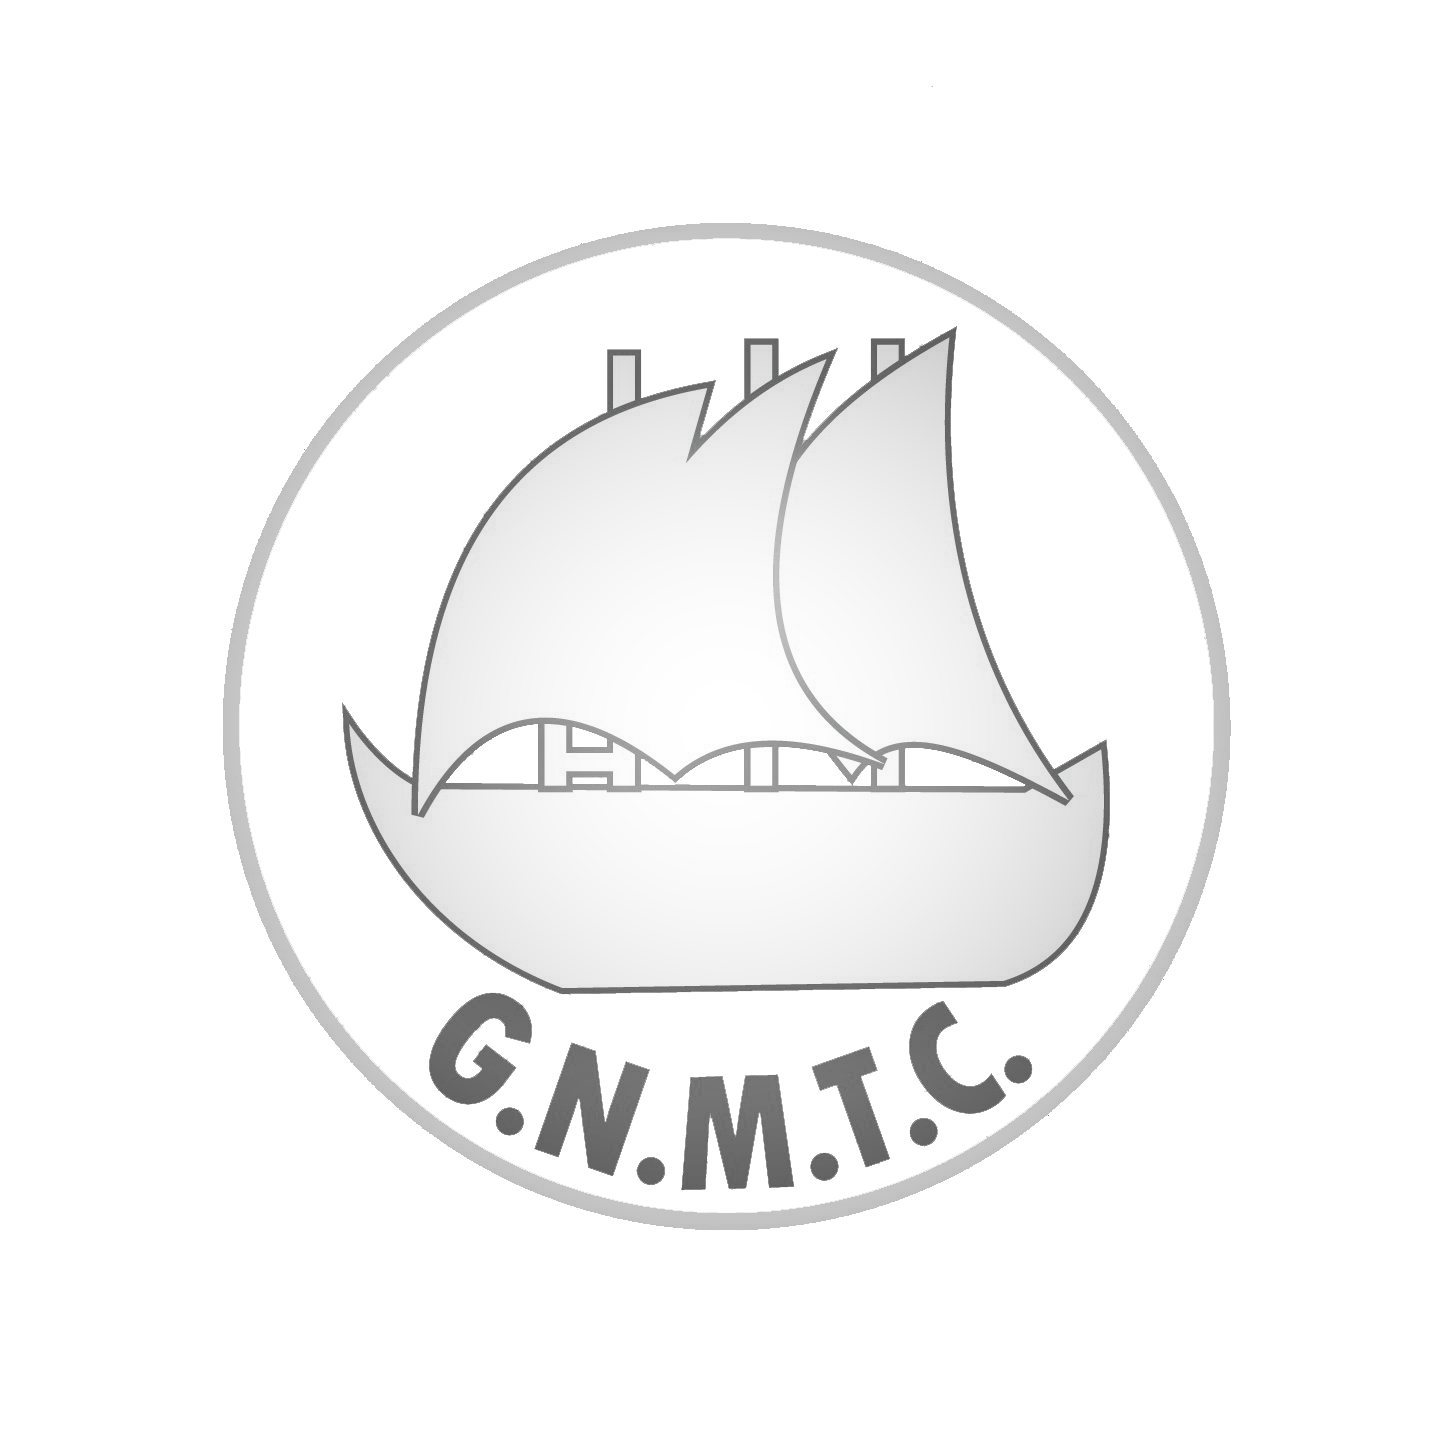 General National Maritime Transport Company